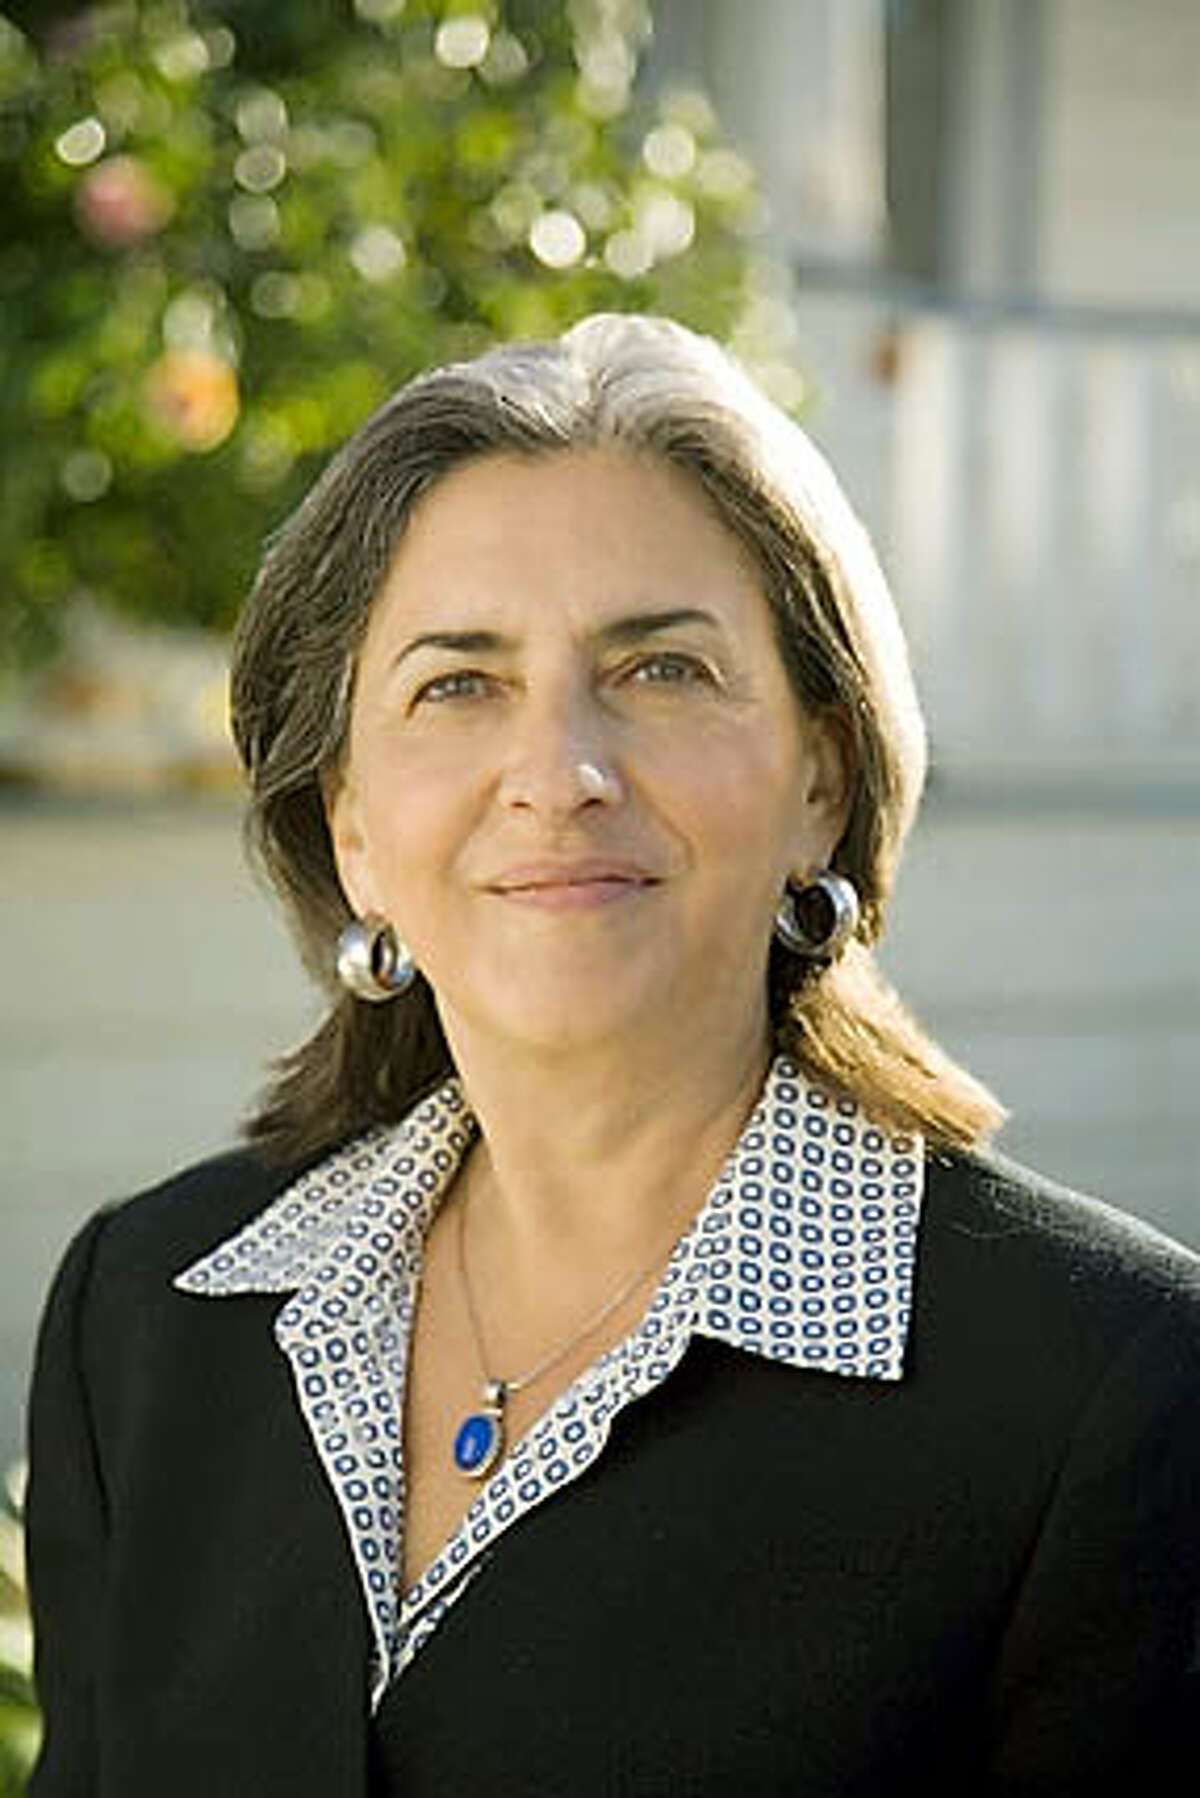 Oakland Councilwoman and 2006 Mayoral candidate Nancy Nadel. Ran on: 01-19-2006 Dellums